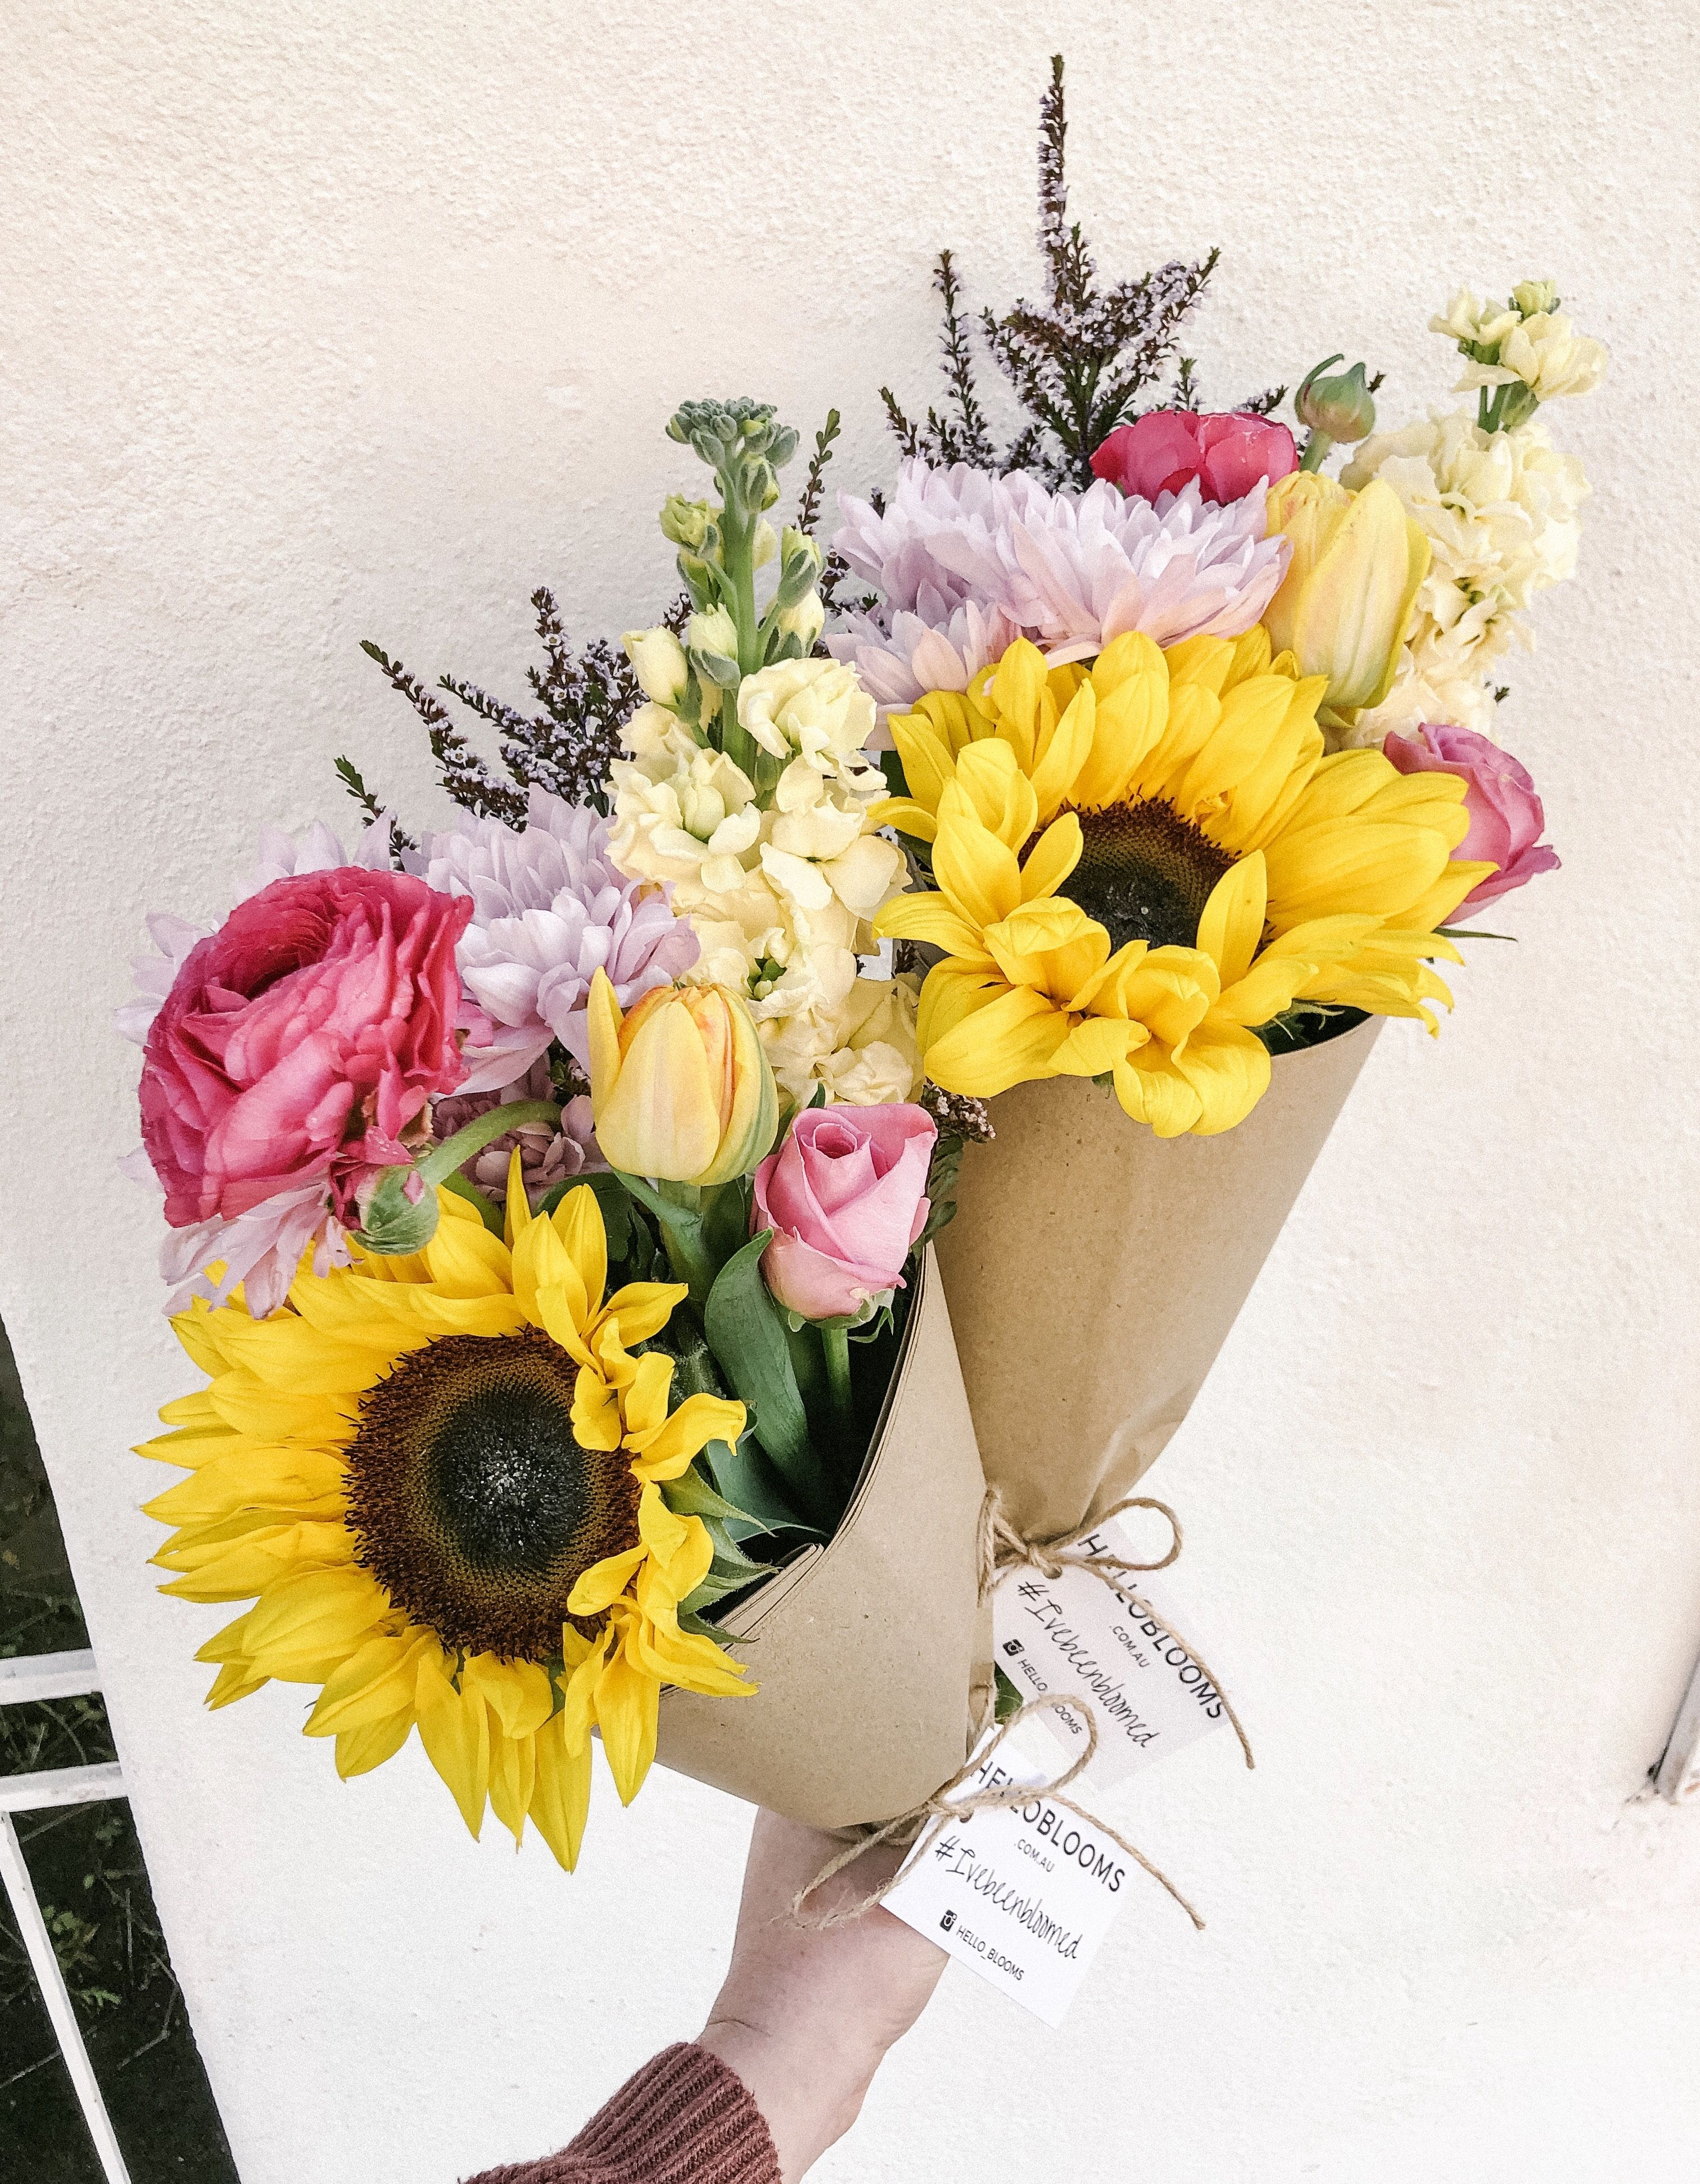 We Are Days Away From Spring And We Couldn T Be More Excited Sunflowers Tulips Roses Ranunculus Stoc Flower Delivery Flowers Delivered Flower Arrangements